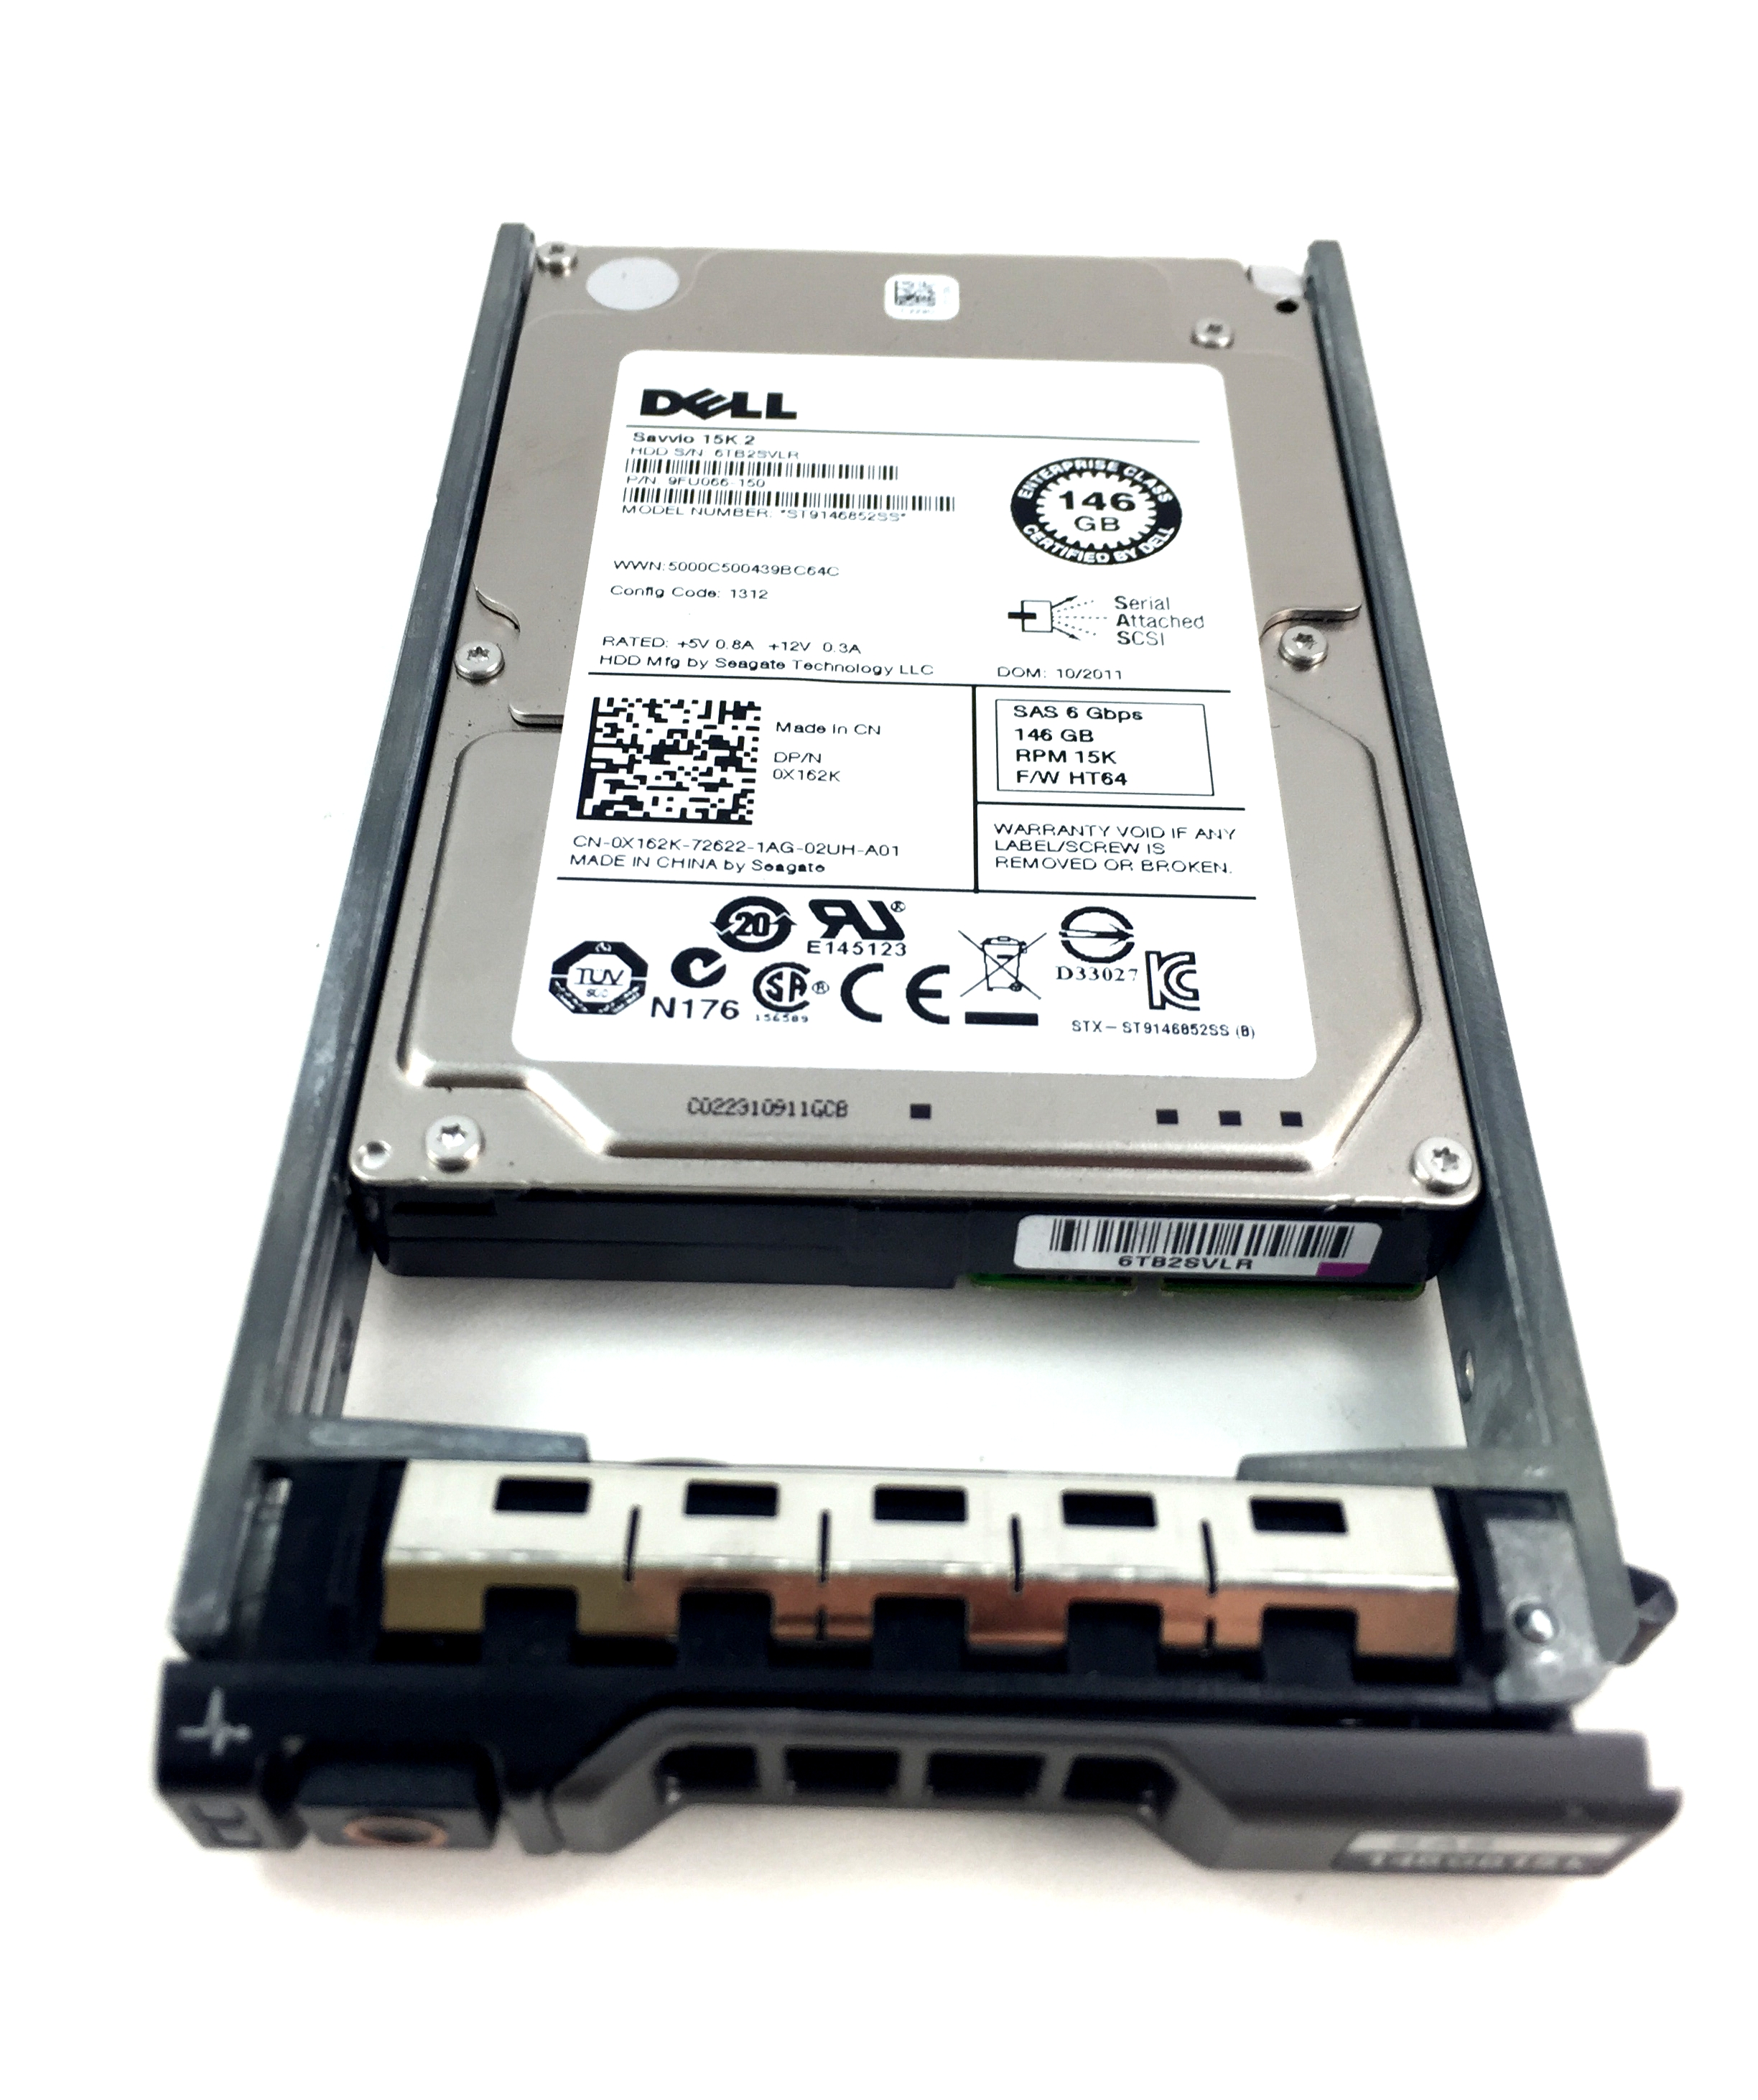 DELL 146GB 15K 6GBPS SAS 2.5'' HARD DRIVE (X162K)